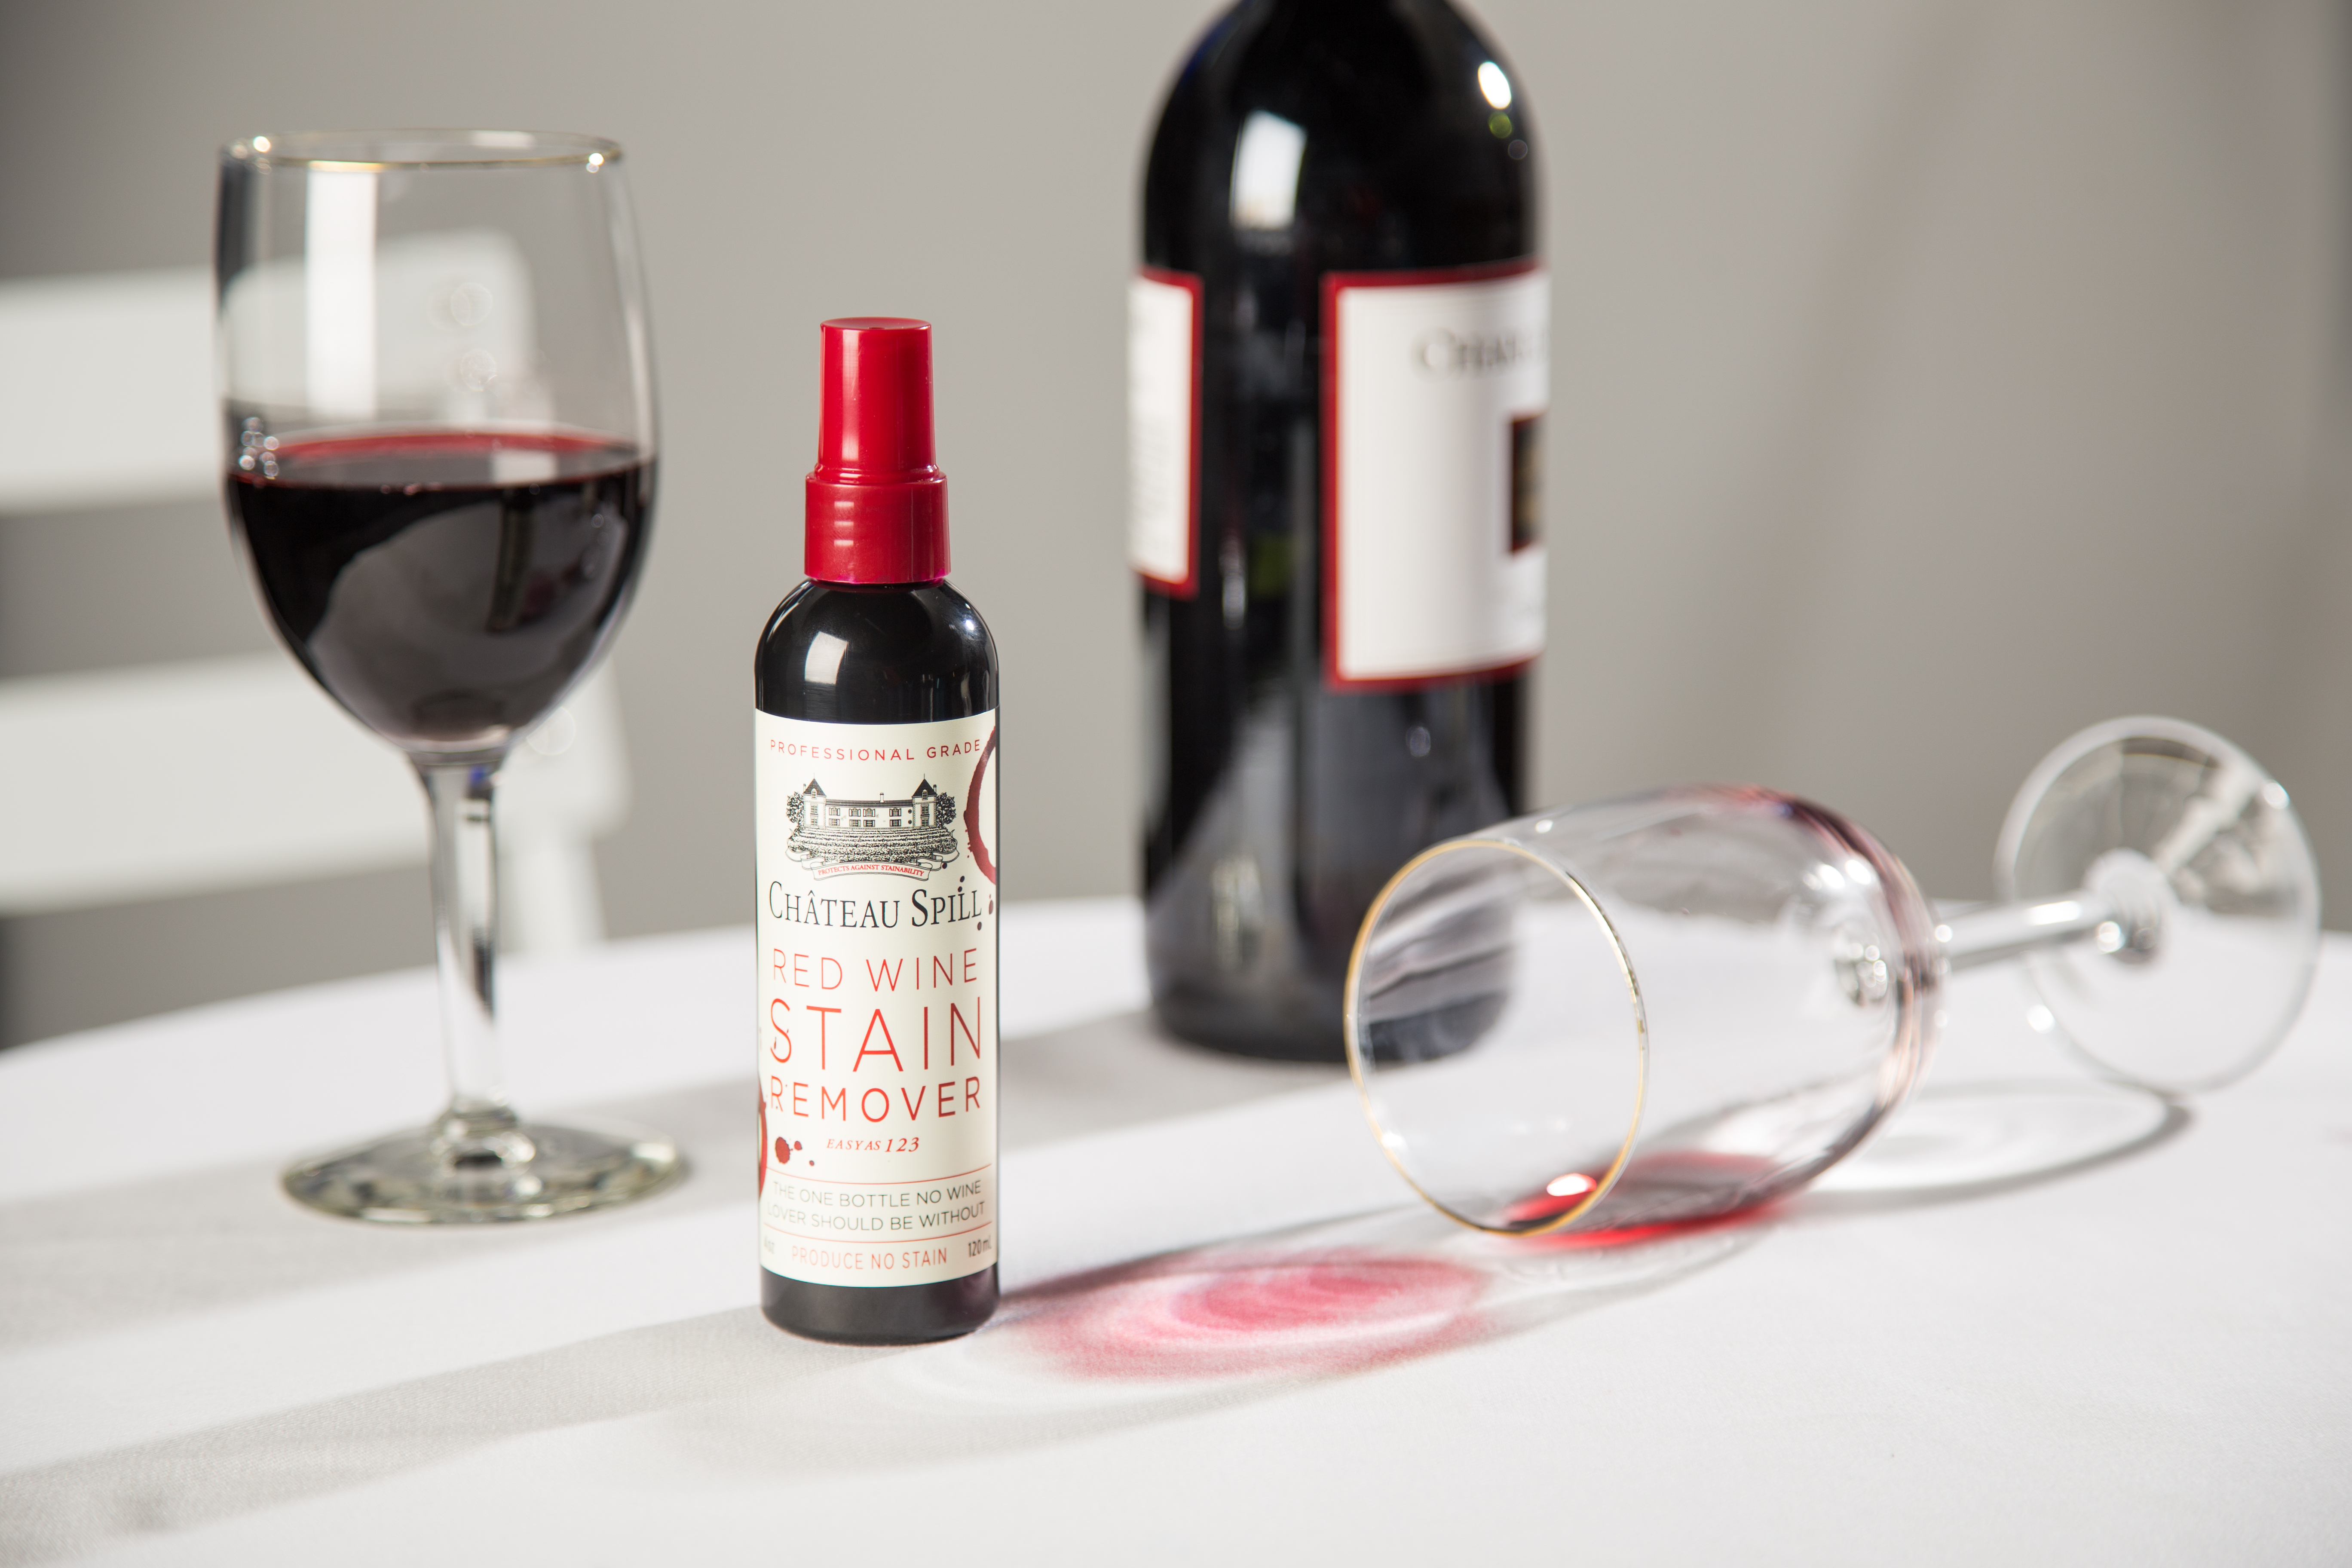 A bottle of Chateau Spill Red Wine Stain Remover sits on a tablecloth stained with red wine